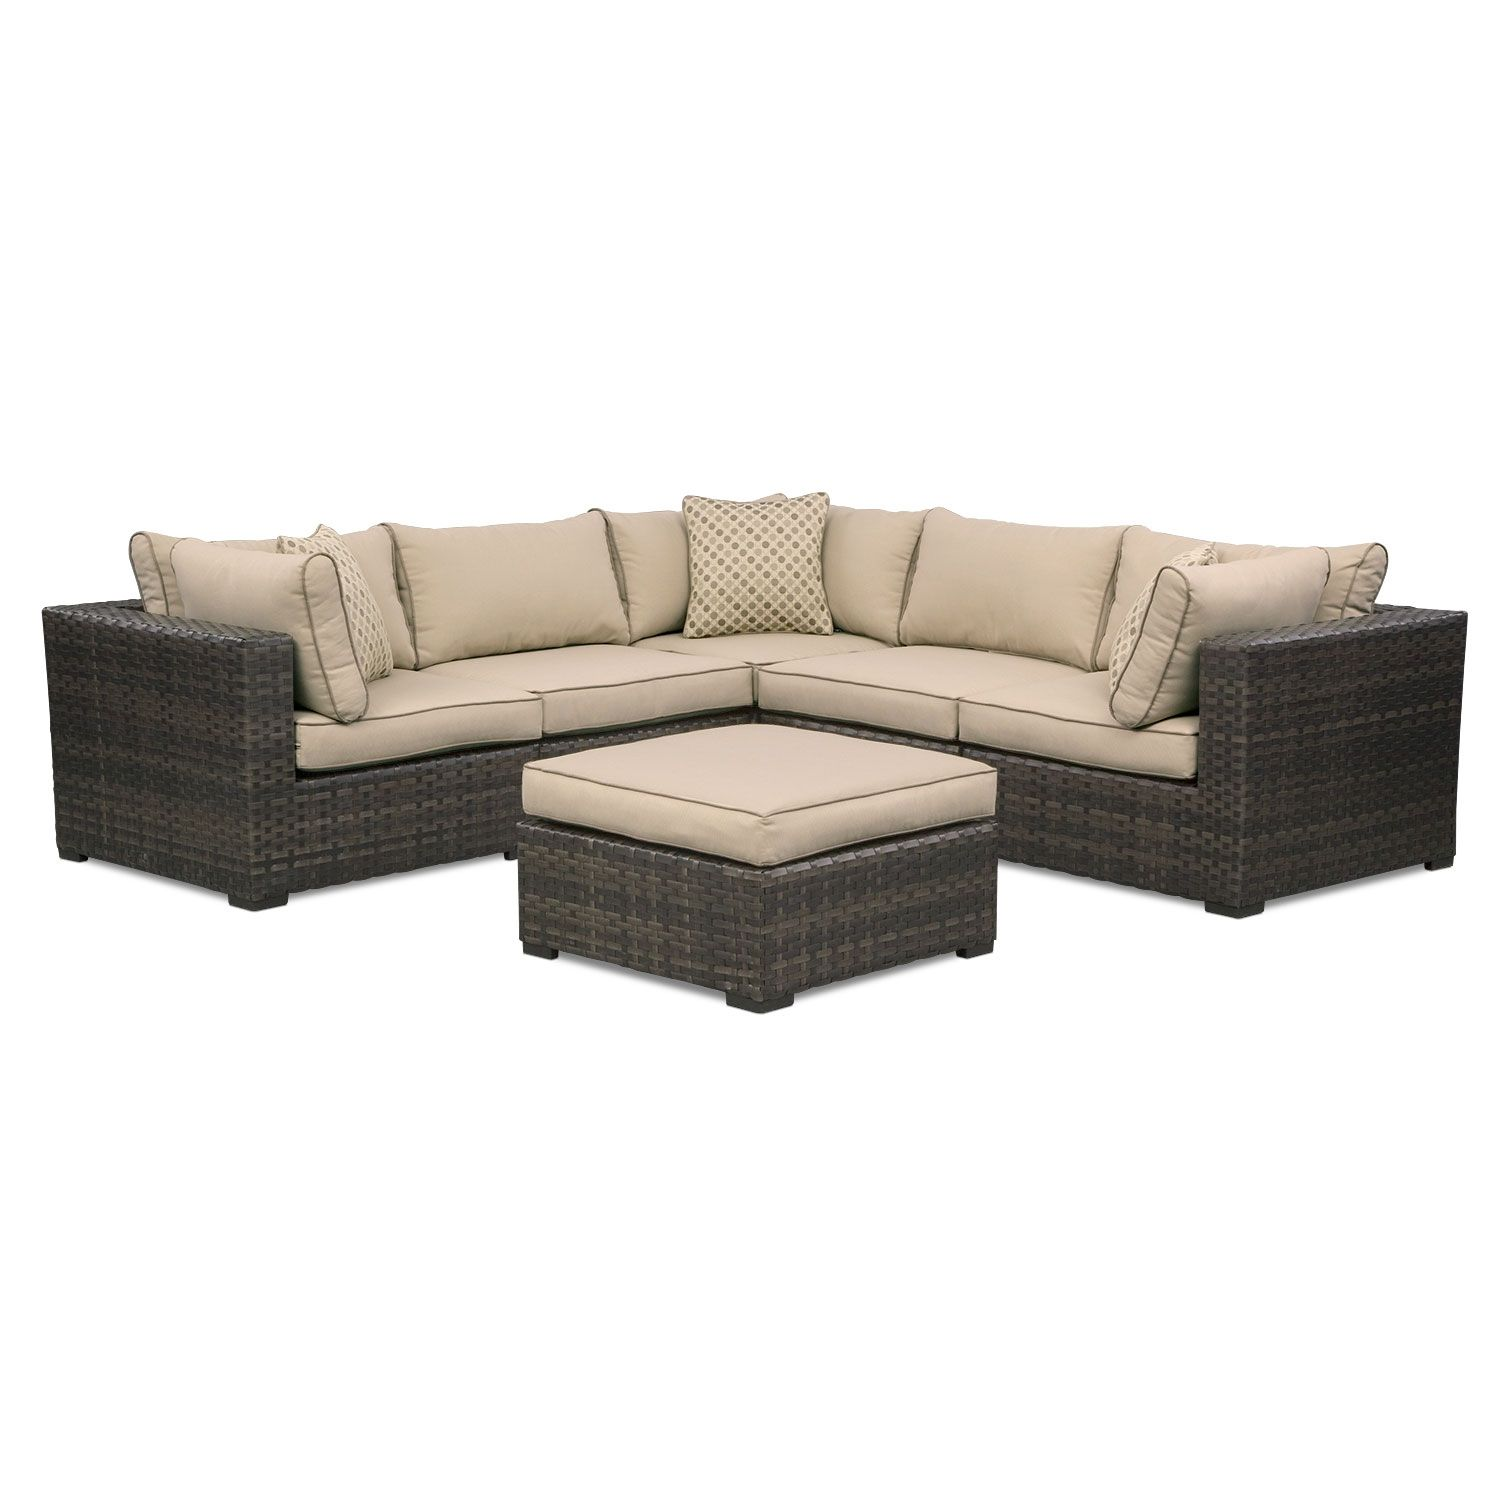 Regatta 5 Pc Sectional And Ottoman Value City Furniture American Signature Furniture Outdoor Furniture